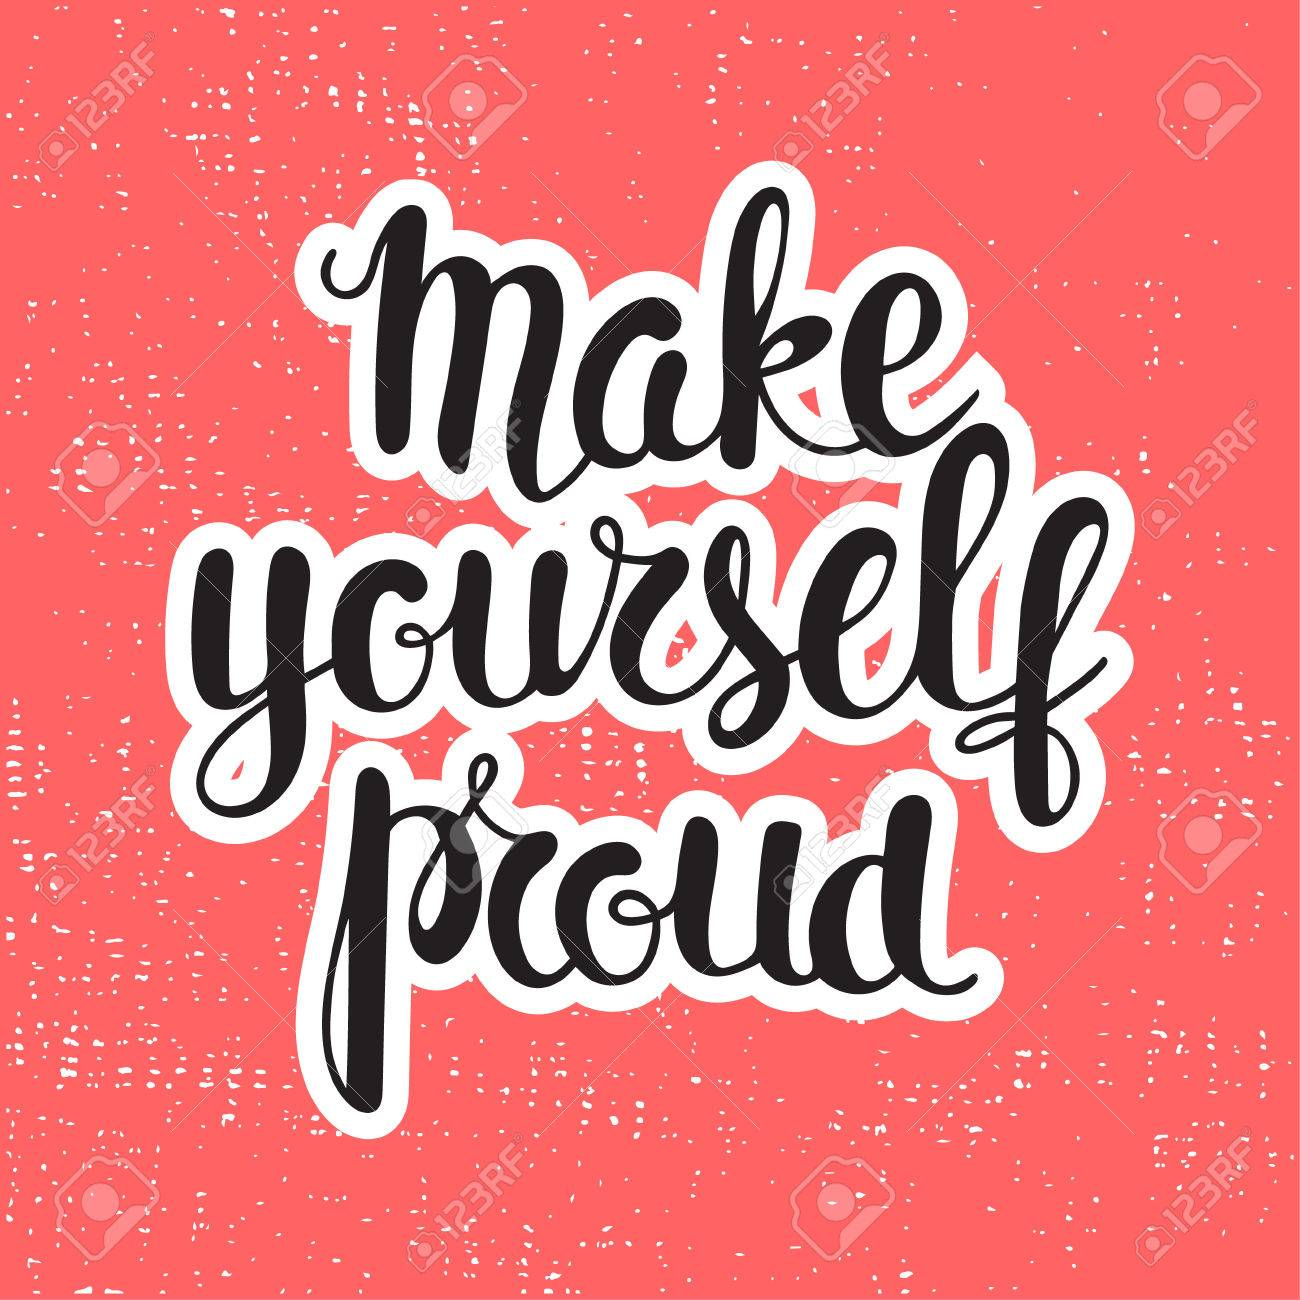 make yourself proud motivational quote perfect design element for banner flyer postcard